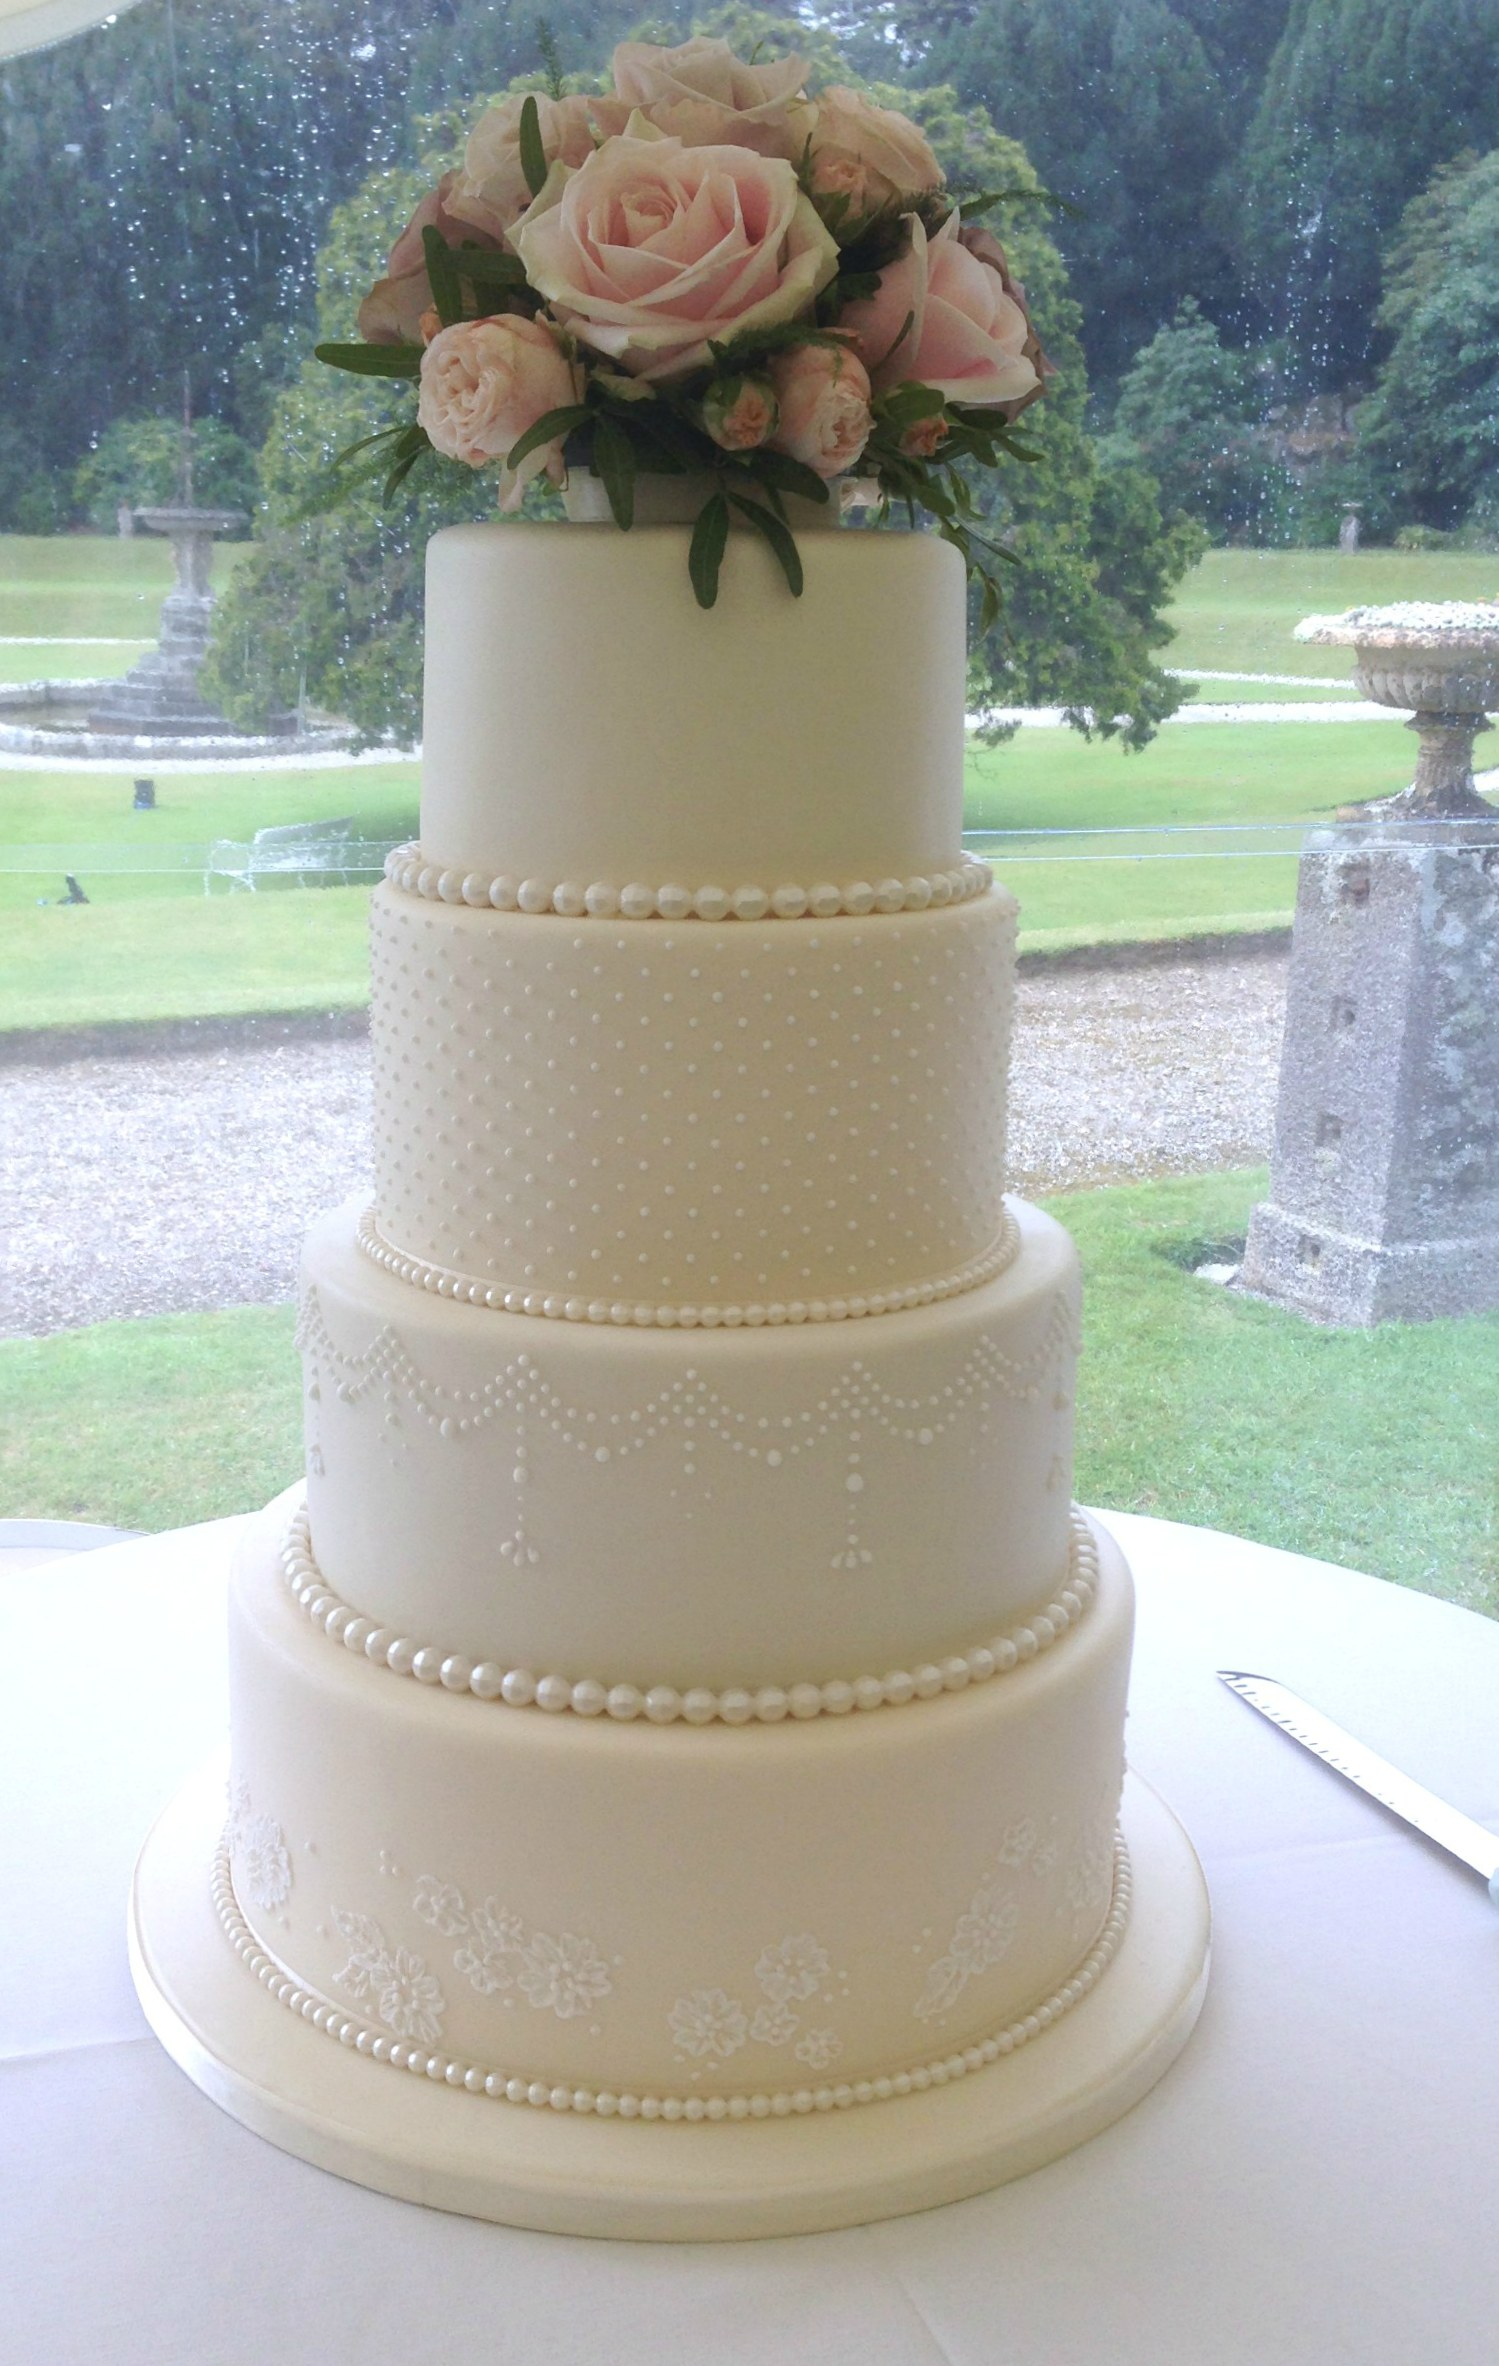 LISA - 4 Tier Ivory Wedding Cake